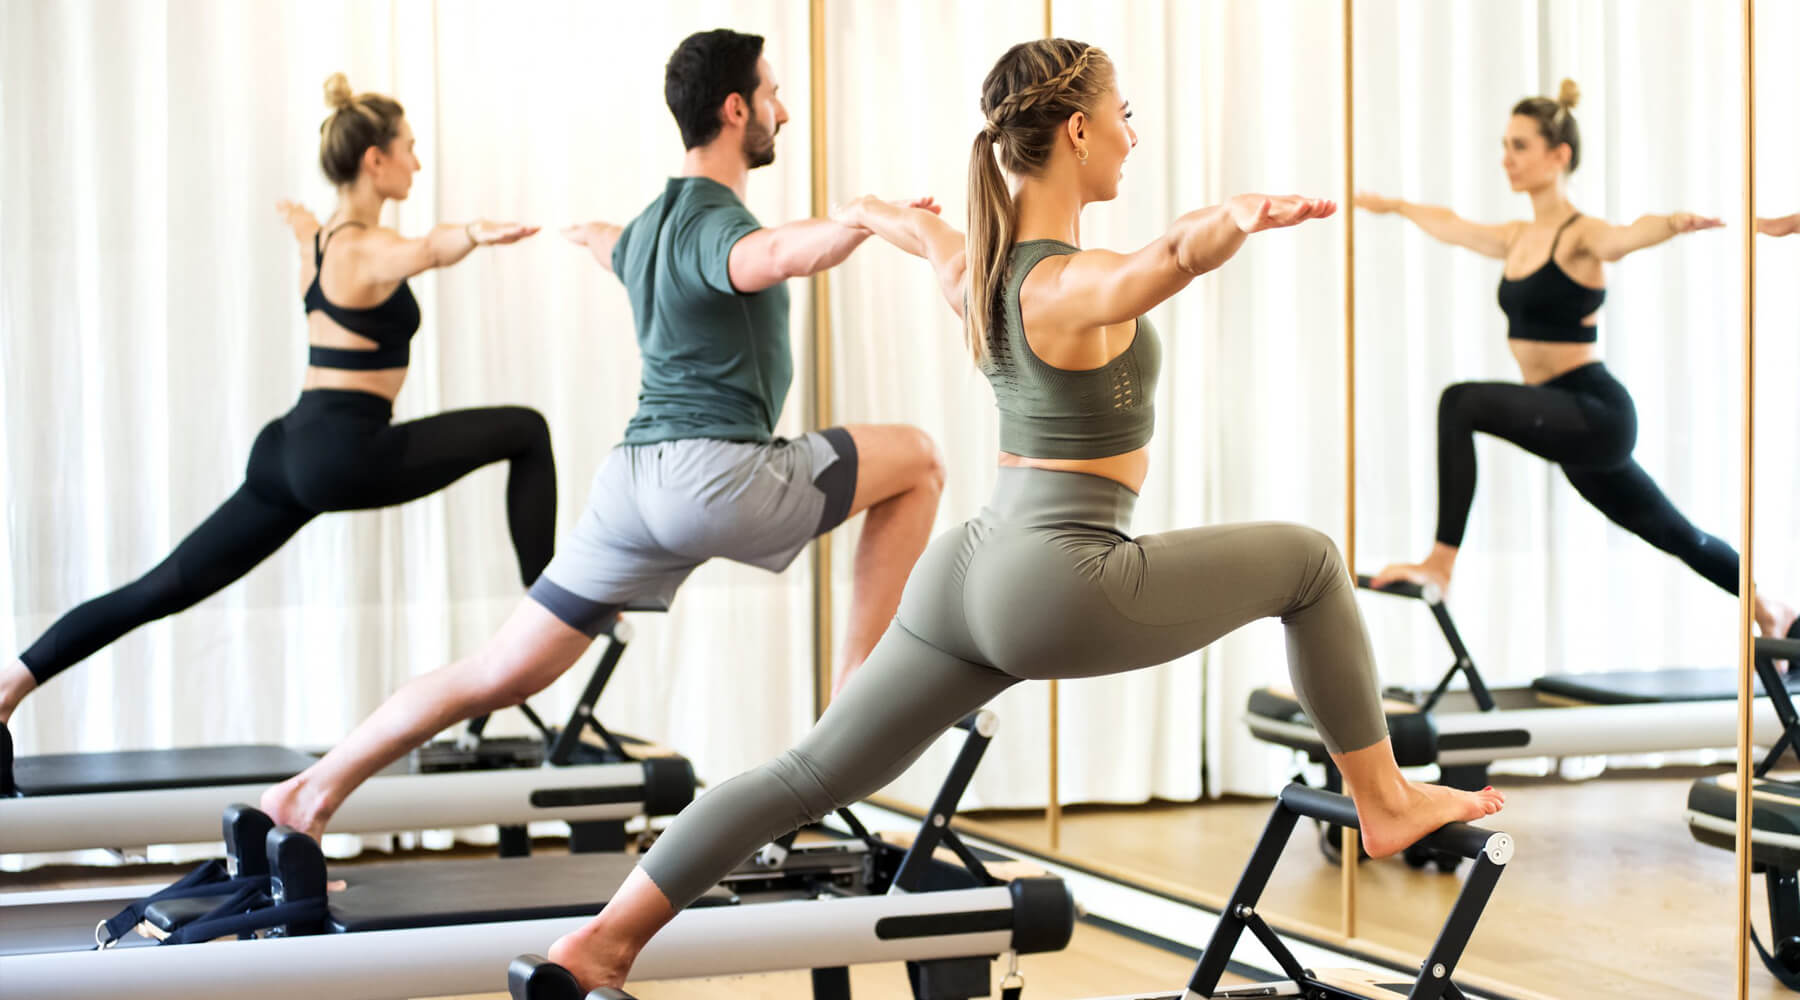 2020 Pilates Reformer Buyer's Guide - Pilates Reformers Plus